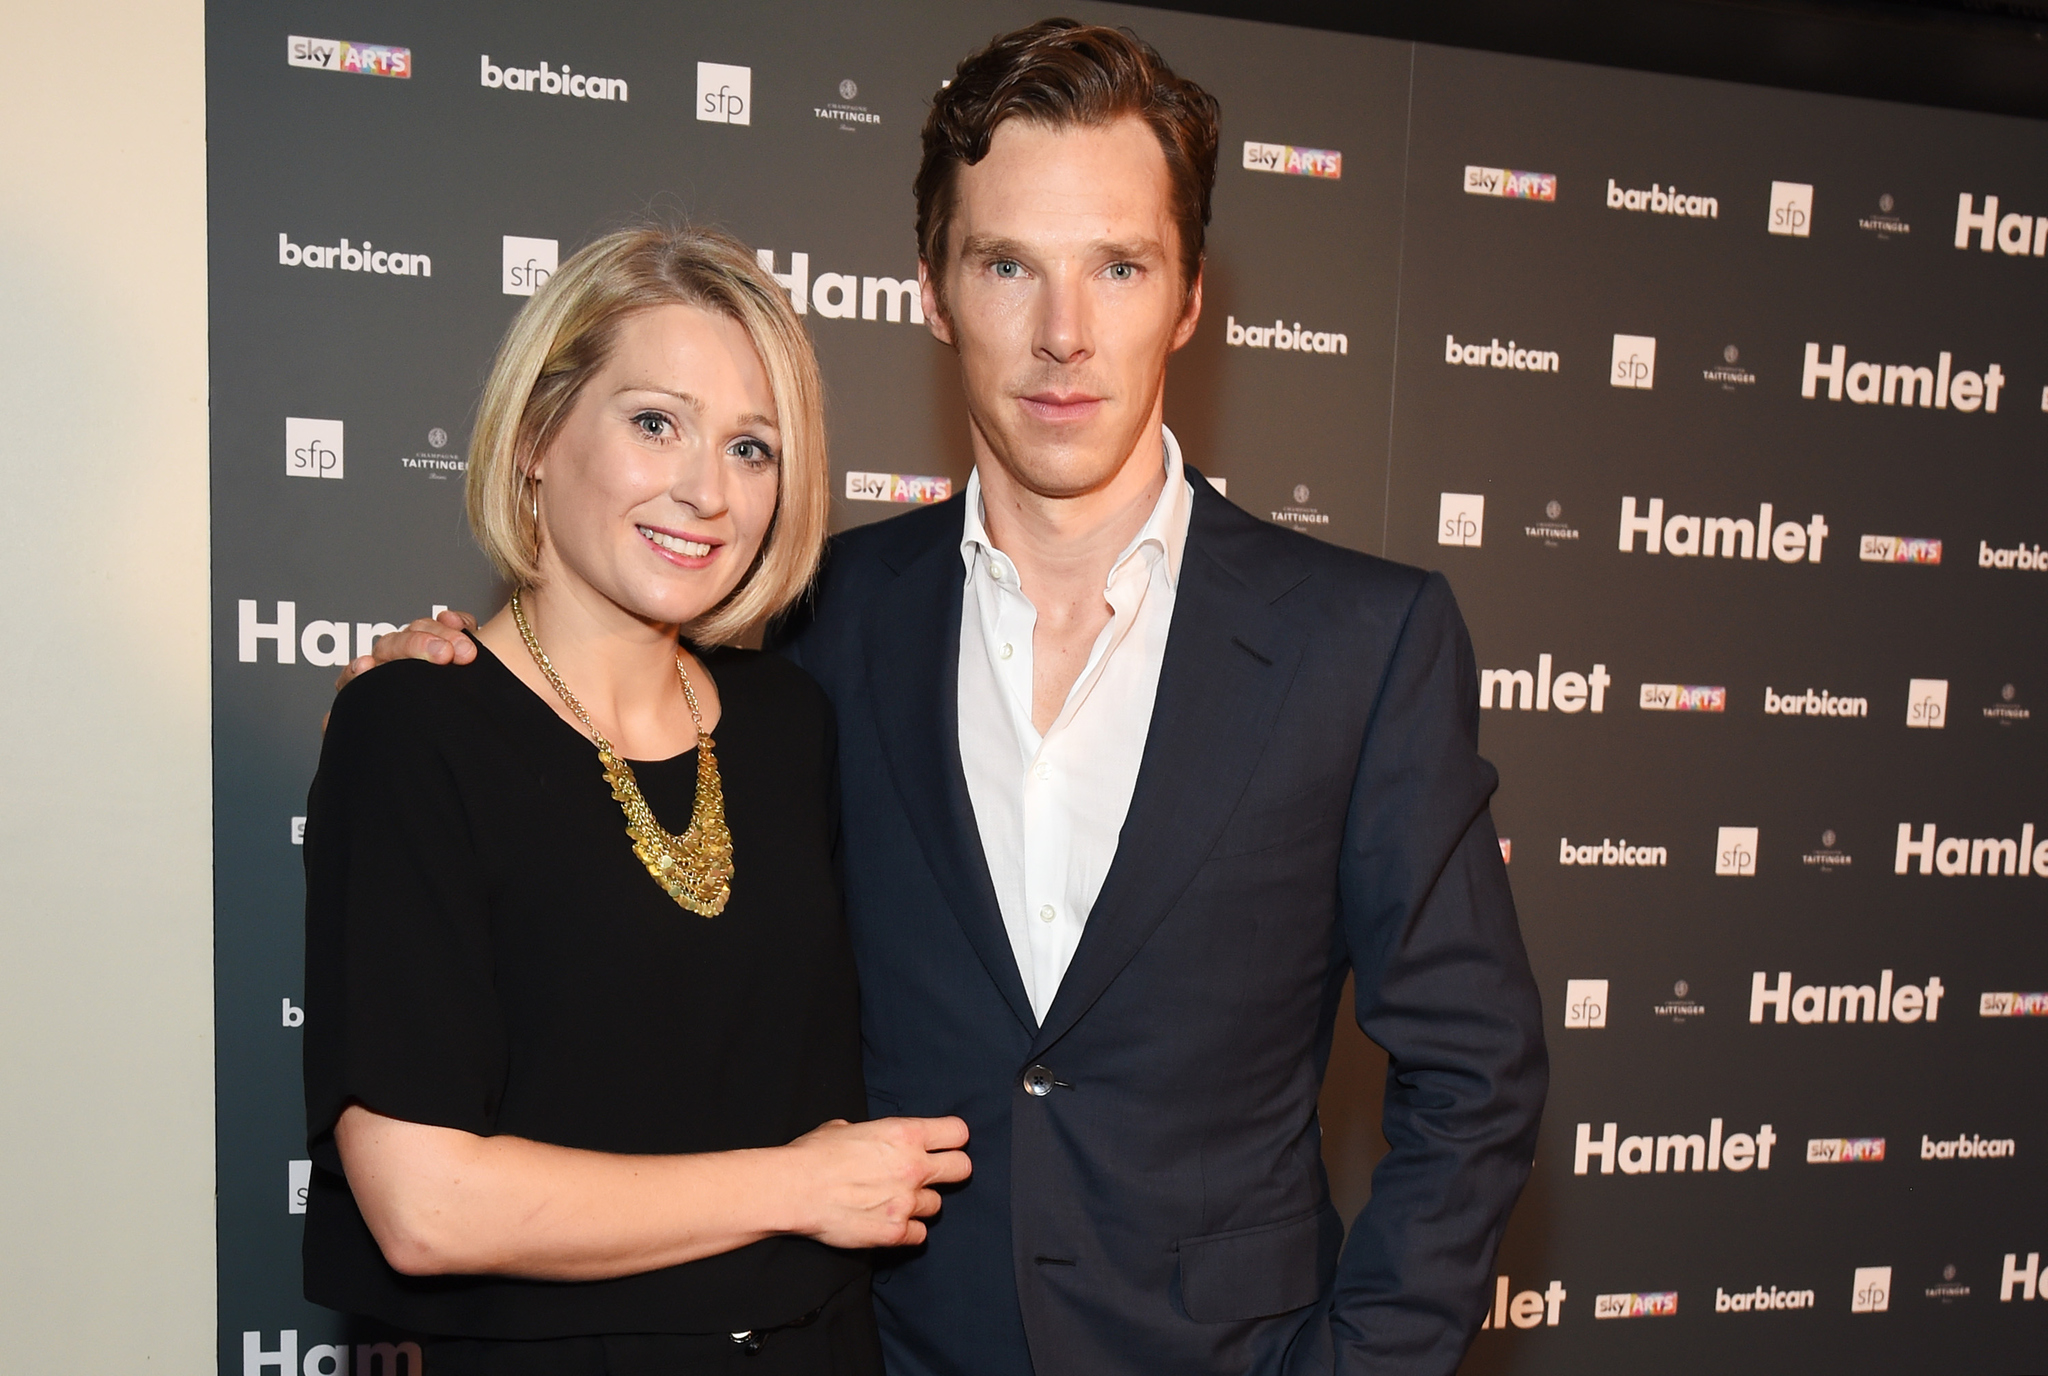 Benedict Cumberbatch and Sian Brooke at an event for National Theatre Live: Hamlet (2015)